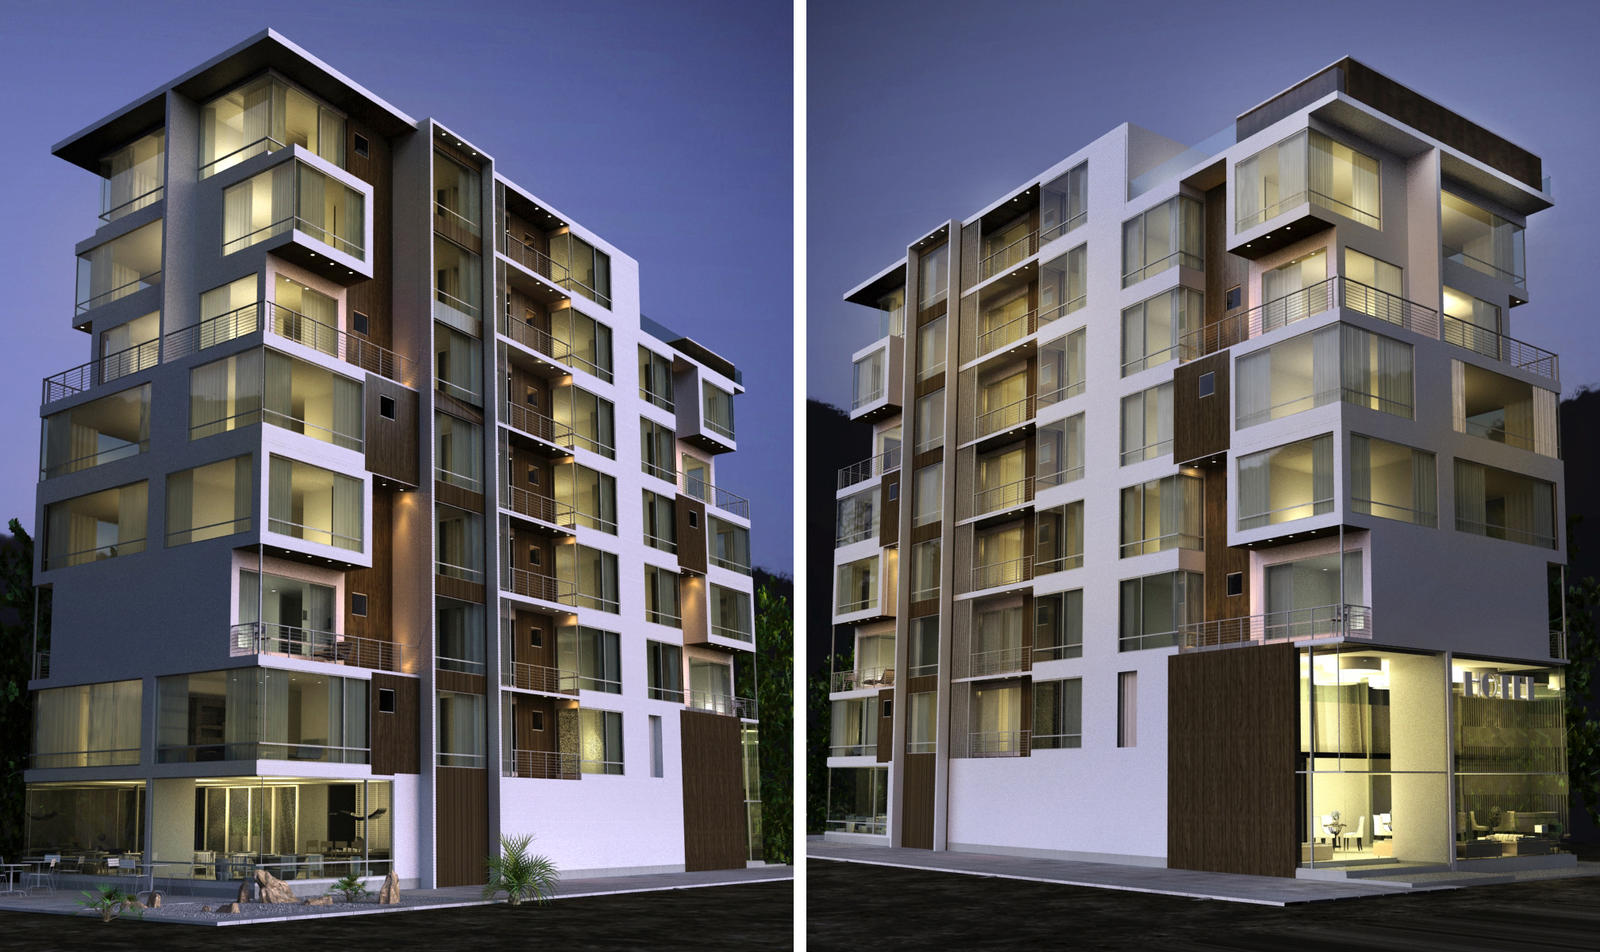 Apartment building by kasrawy on deviantart for Modern residential building design